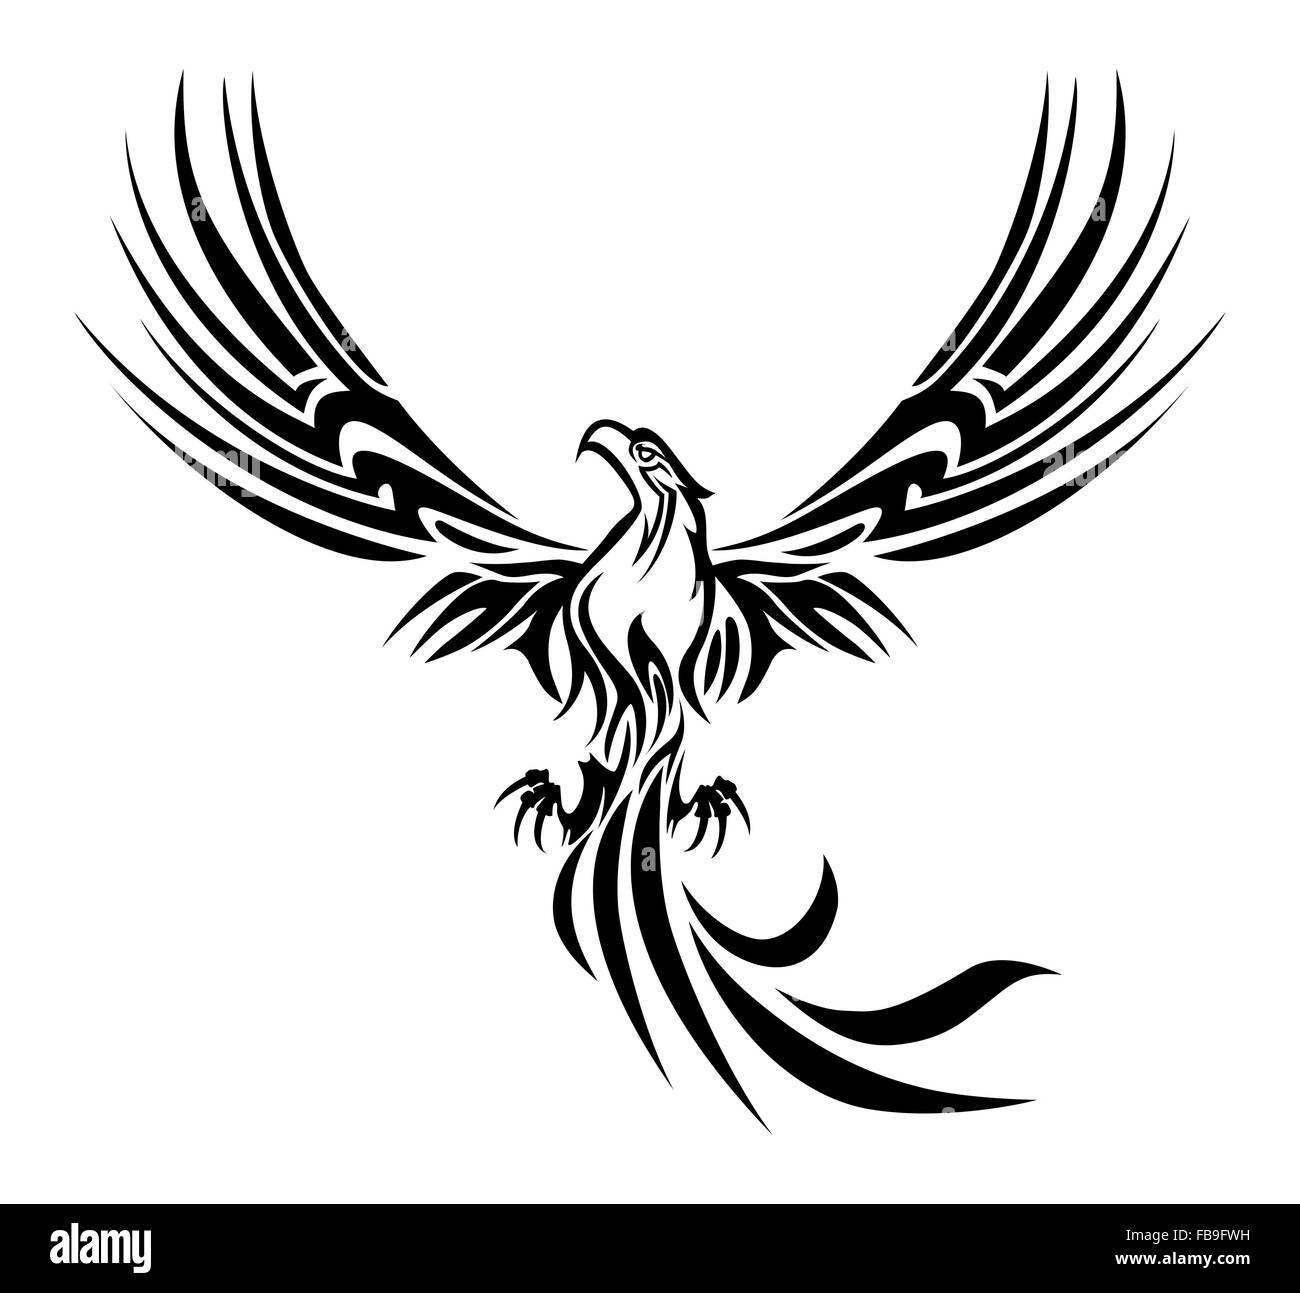 Phoenix bird with rising wings ancient symbol of revival stock illustrations of a concept myth bird phoenix rising from the ashes tattoo on isolated white background buycottarizona